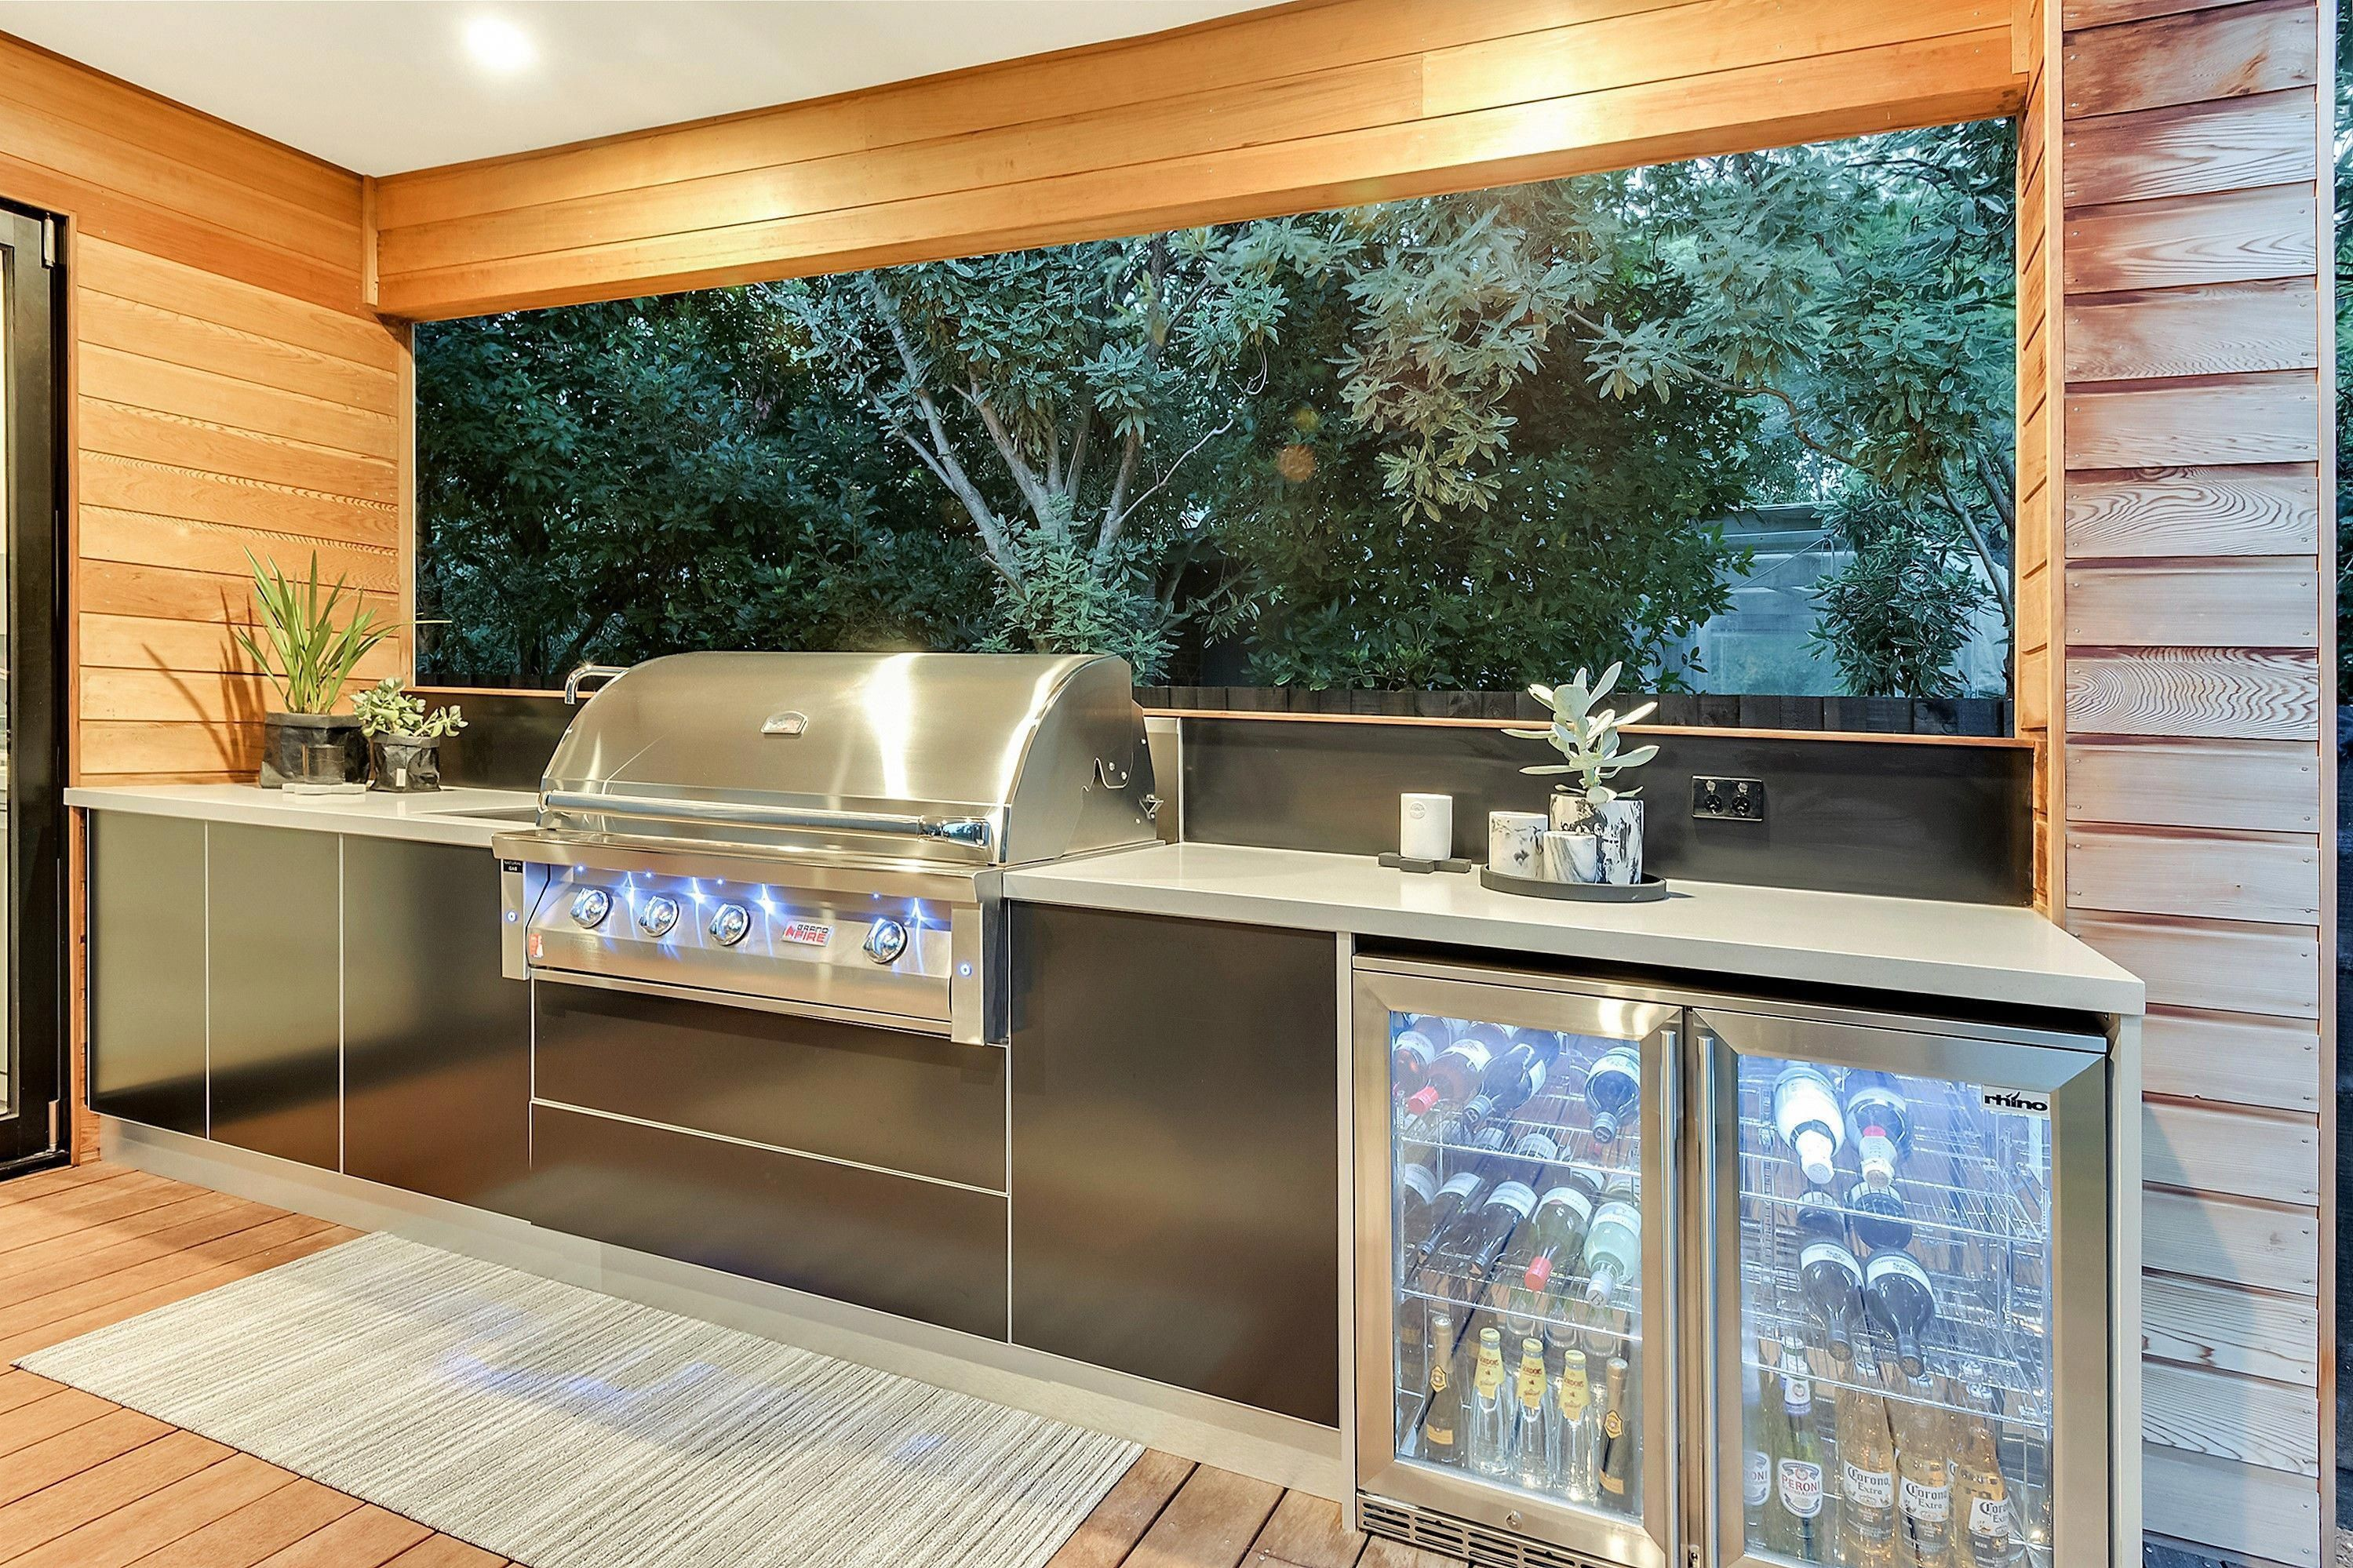 While Making Aluminum Railings Please Describe The Regional Structure Codes And Choose The Outdoor Bbq Kitchen Outdoor Kitchen Design Outdoor Kitchen Cabinets